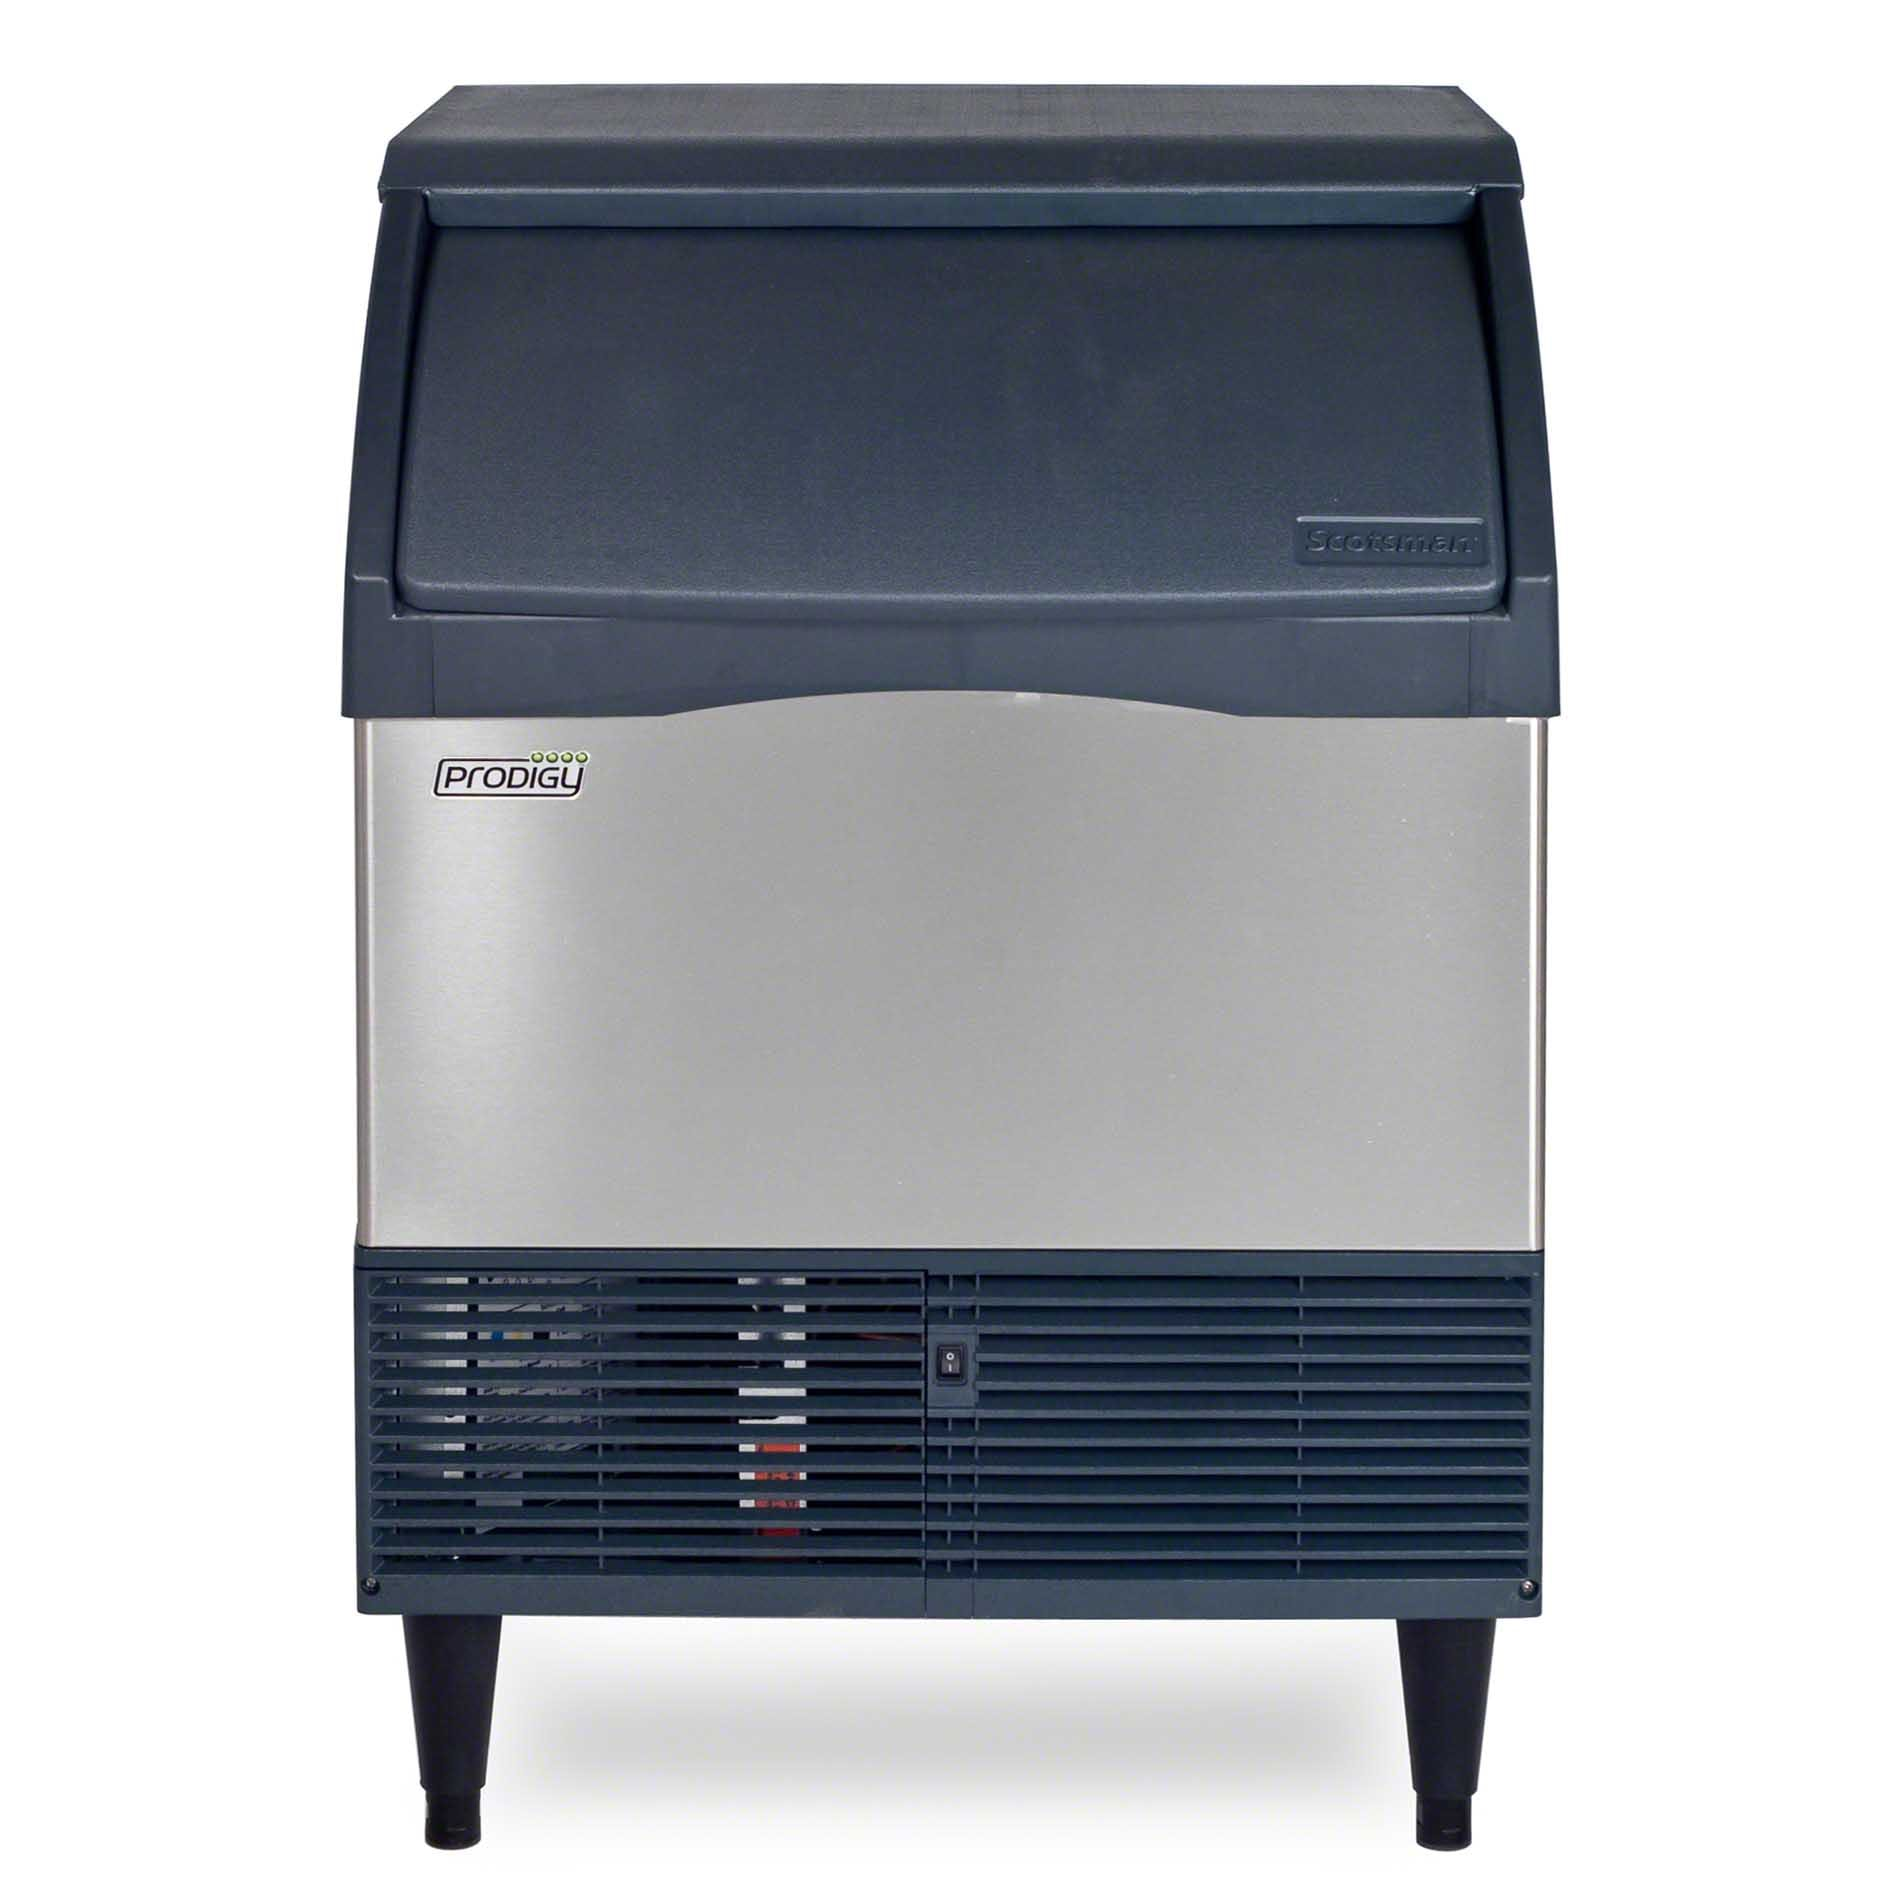 Scotsman - CU1526SA-1A 150 lb Self-Contained Cube Ice Machine - Prodigy Series Ice machine sold by Food Service Warehouse